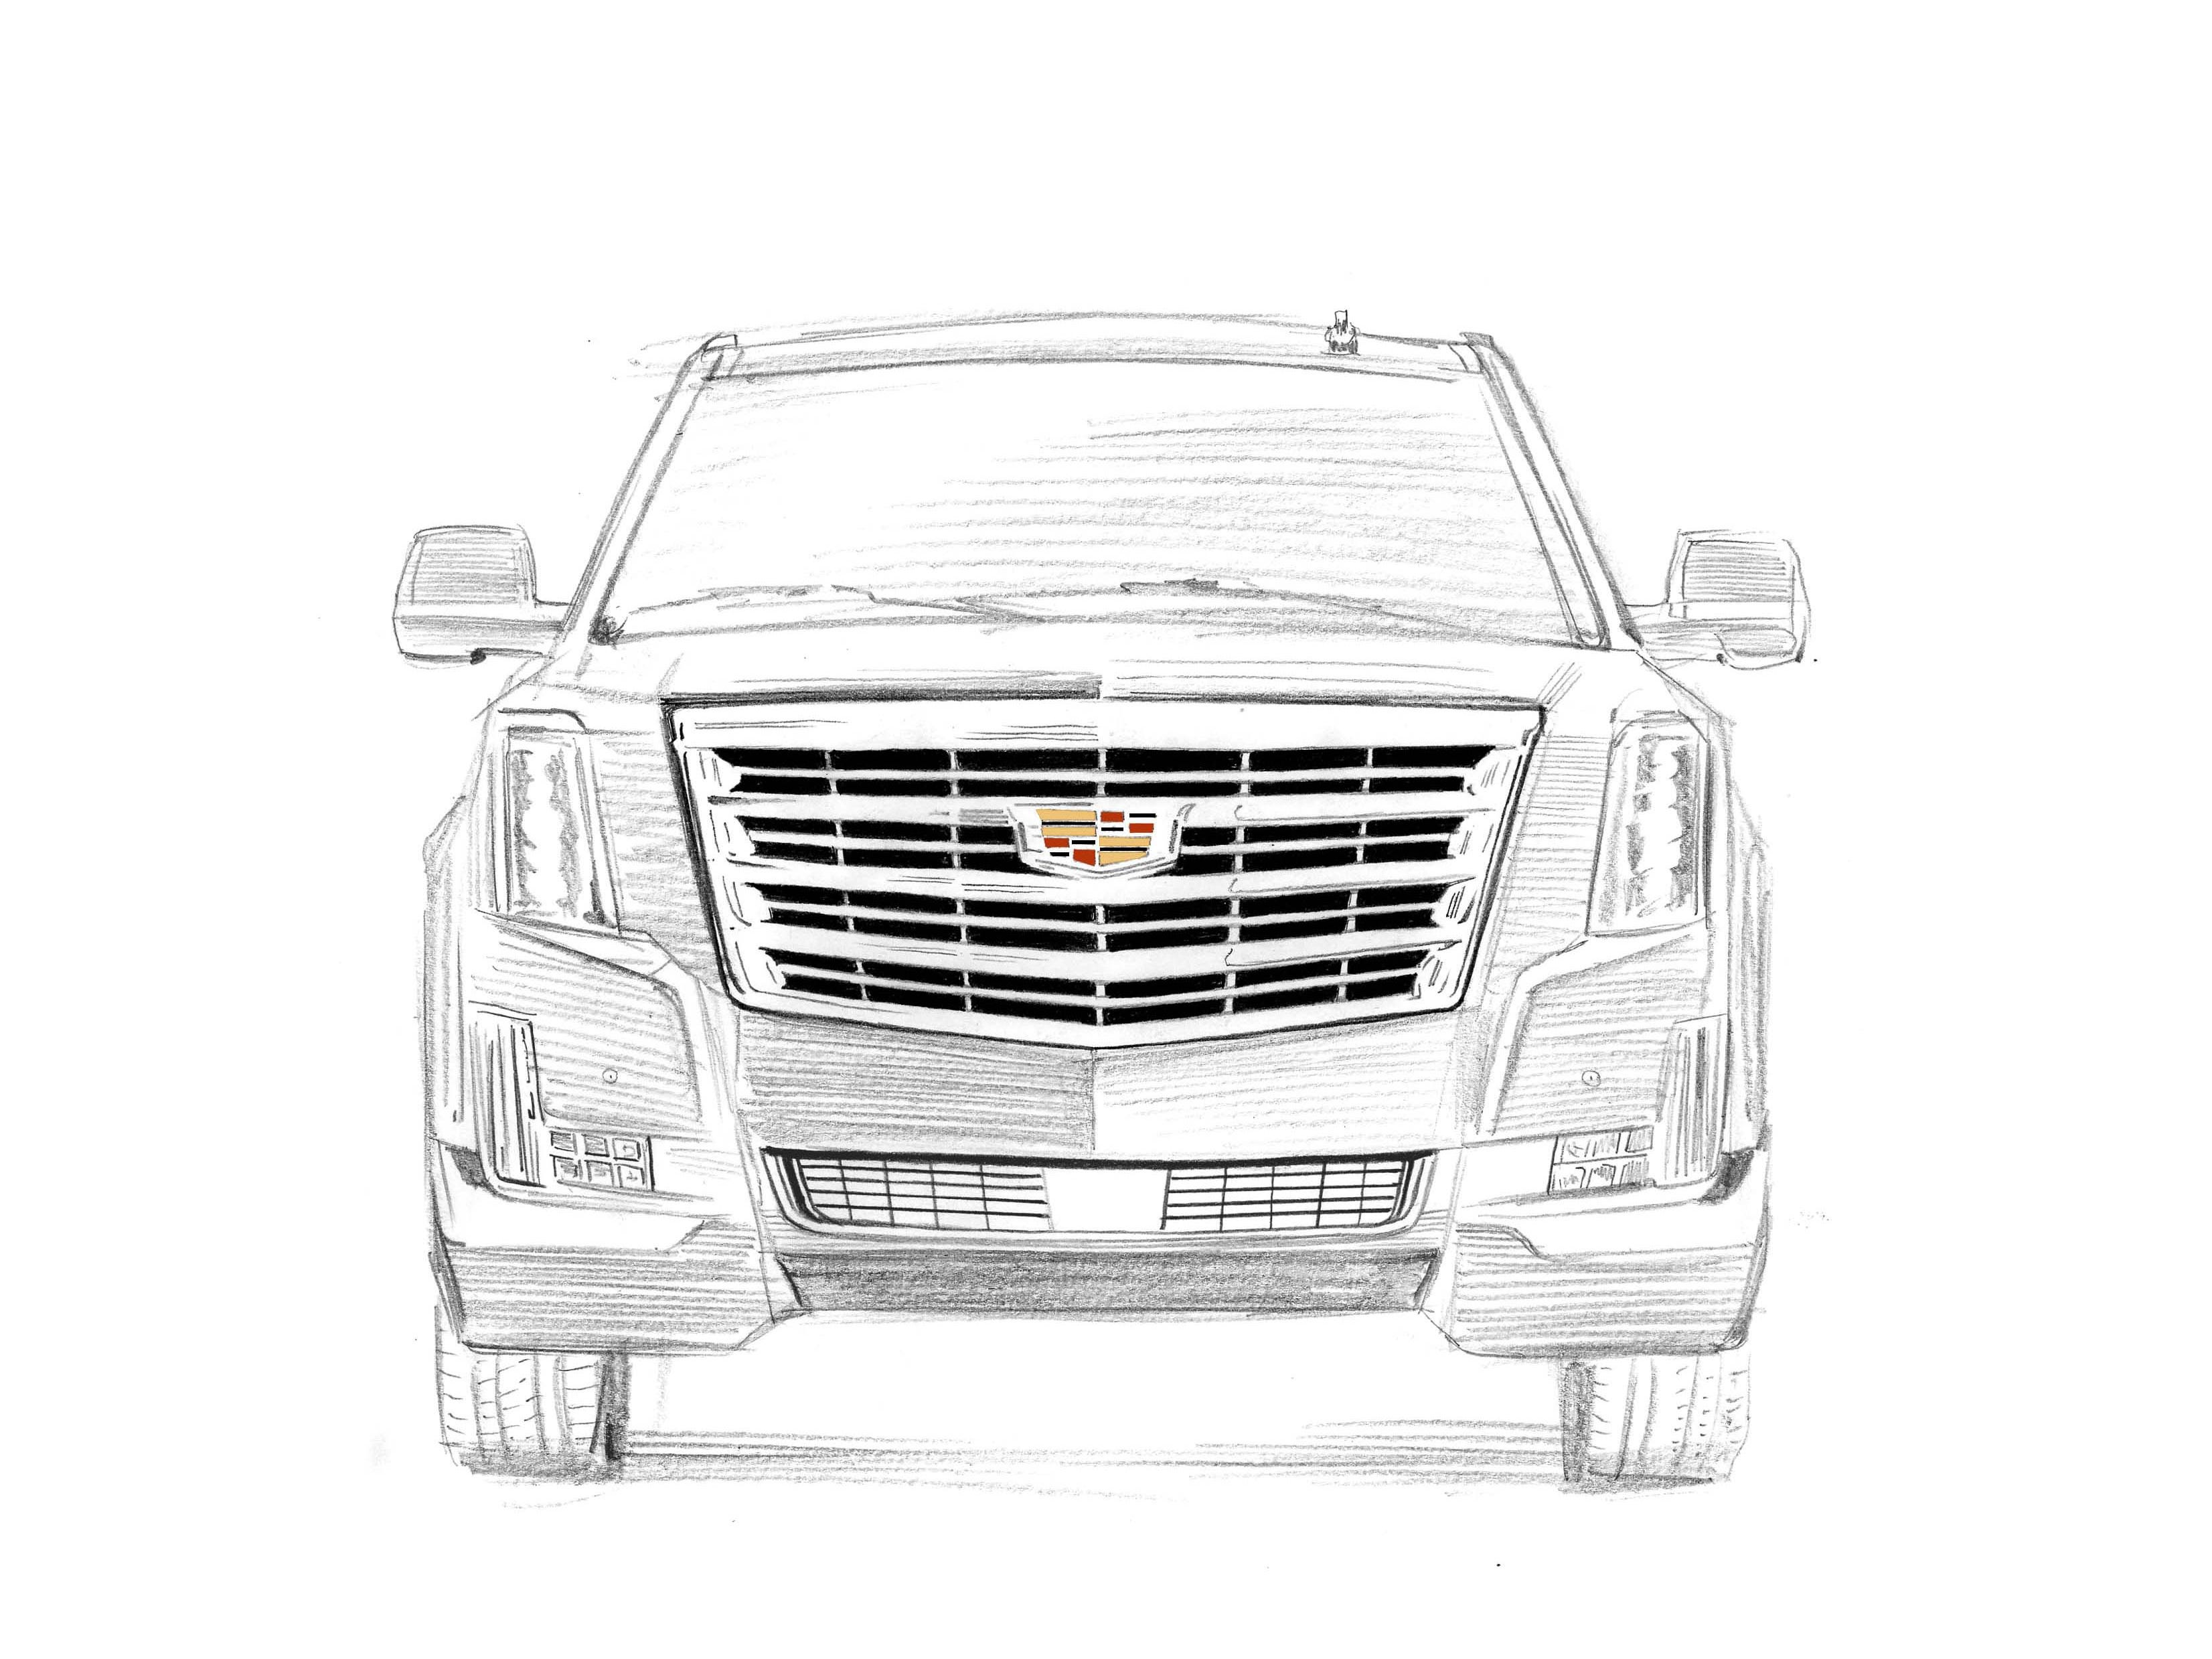 Cadillac Escalade Gen 4, 2015-today: The state-of-the-art Escalade is a rolling condo with plush, multi-way leather seats, 4G WiFi connectivity, magnetic shocks, and powerful, sub-6 second, 0-60 acceleration from its 6.2-liter V-8. 20th anniversary Escalade sketch drawn by award-winning illustrator Joe McKendry.